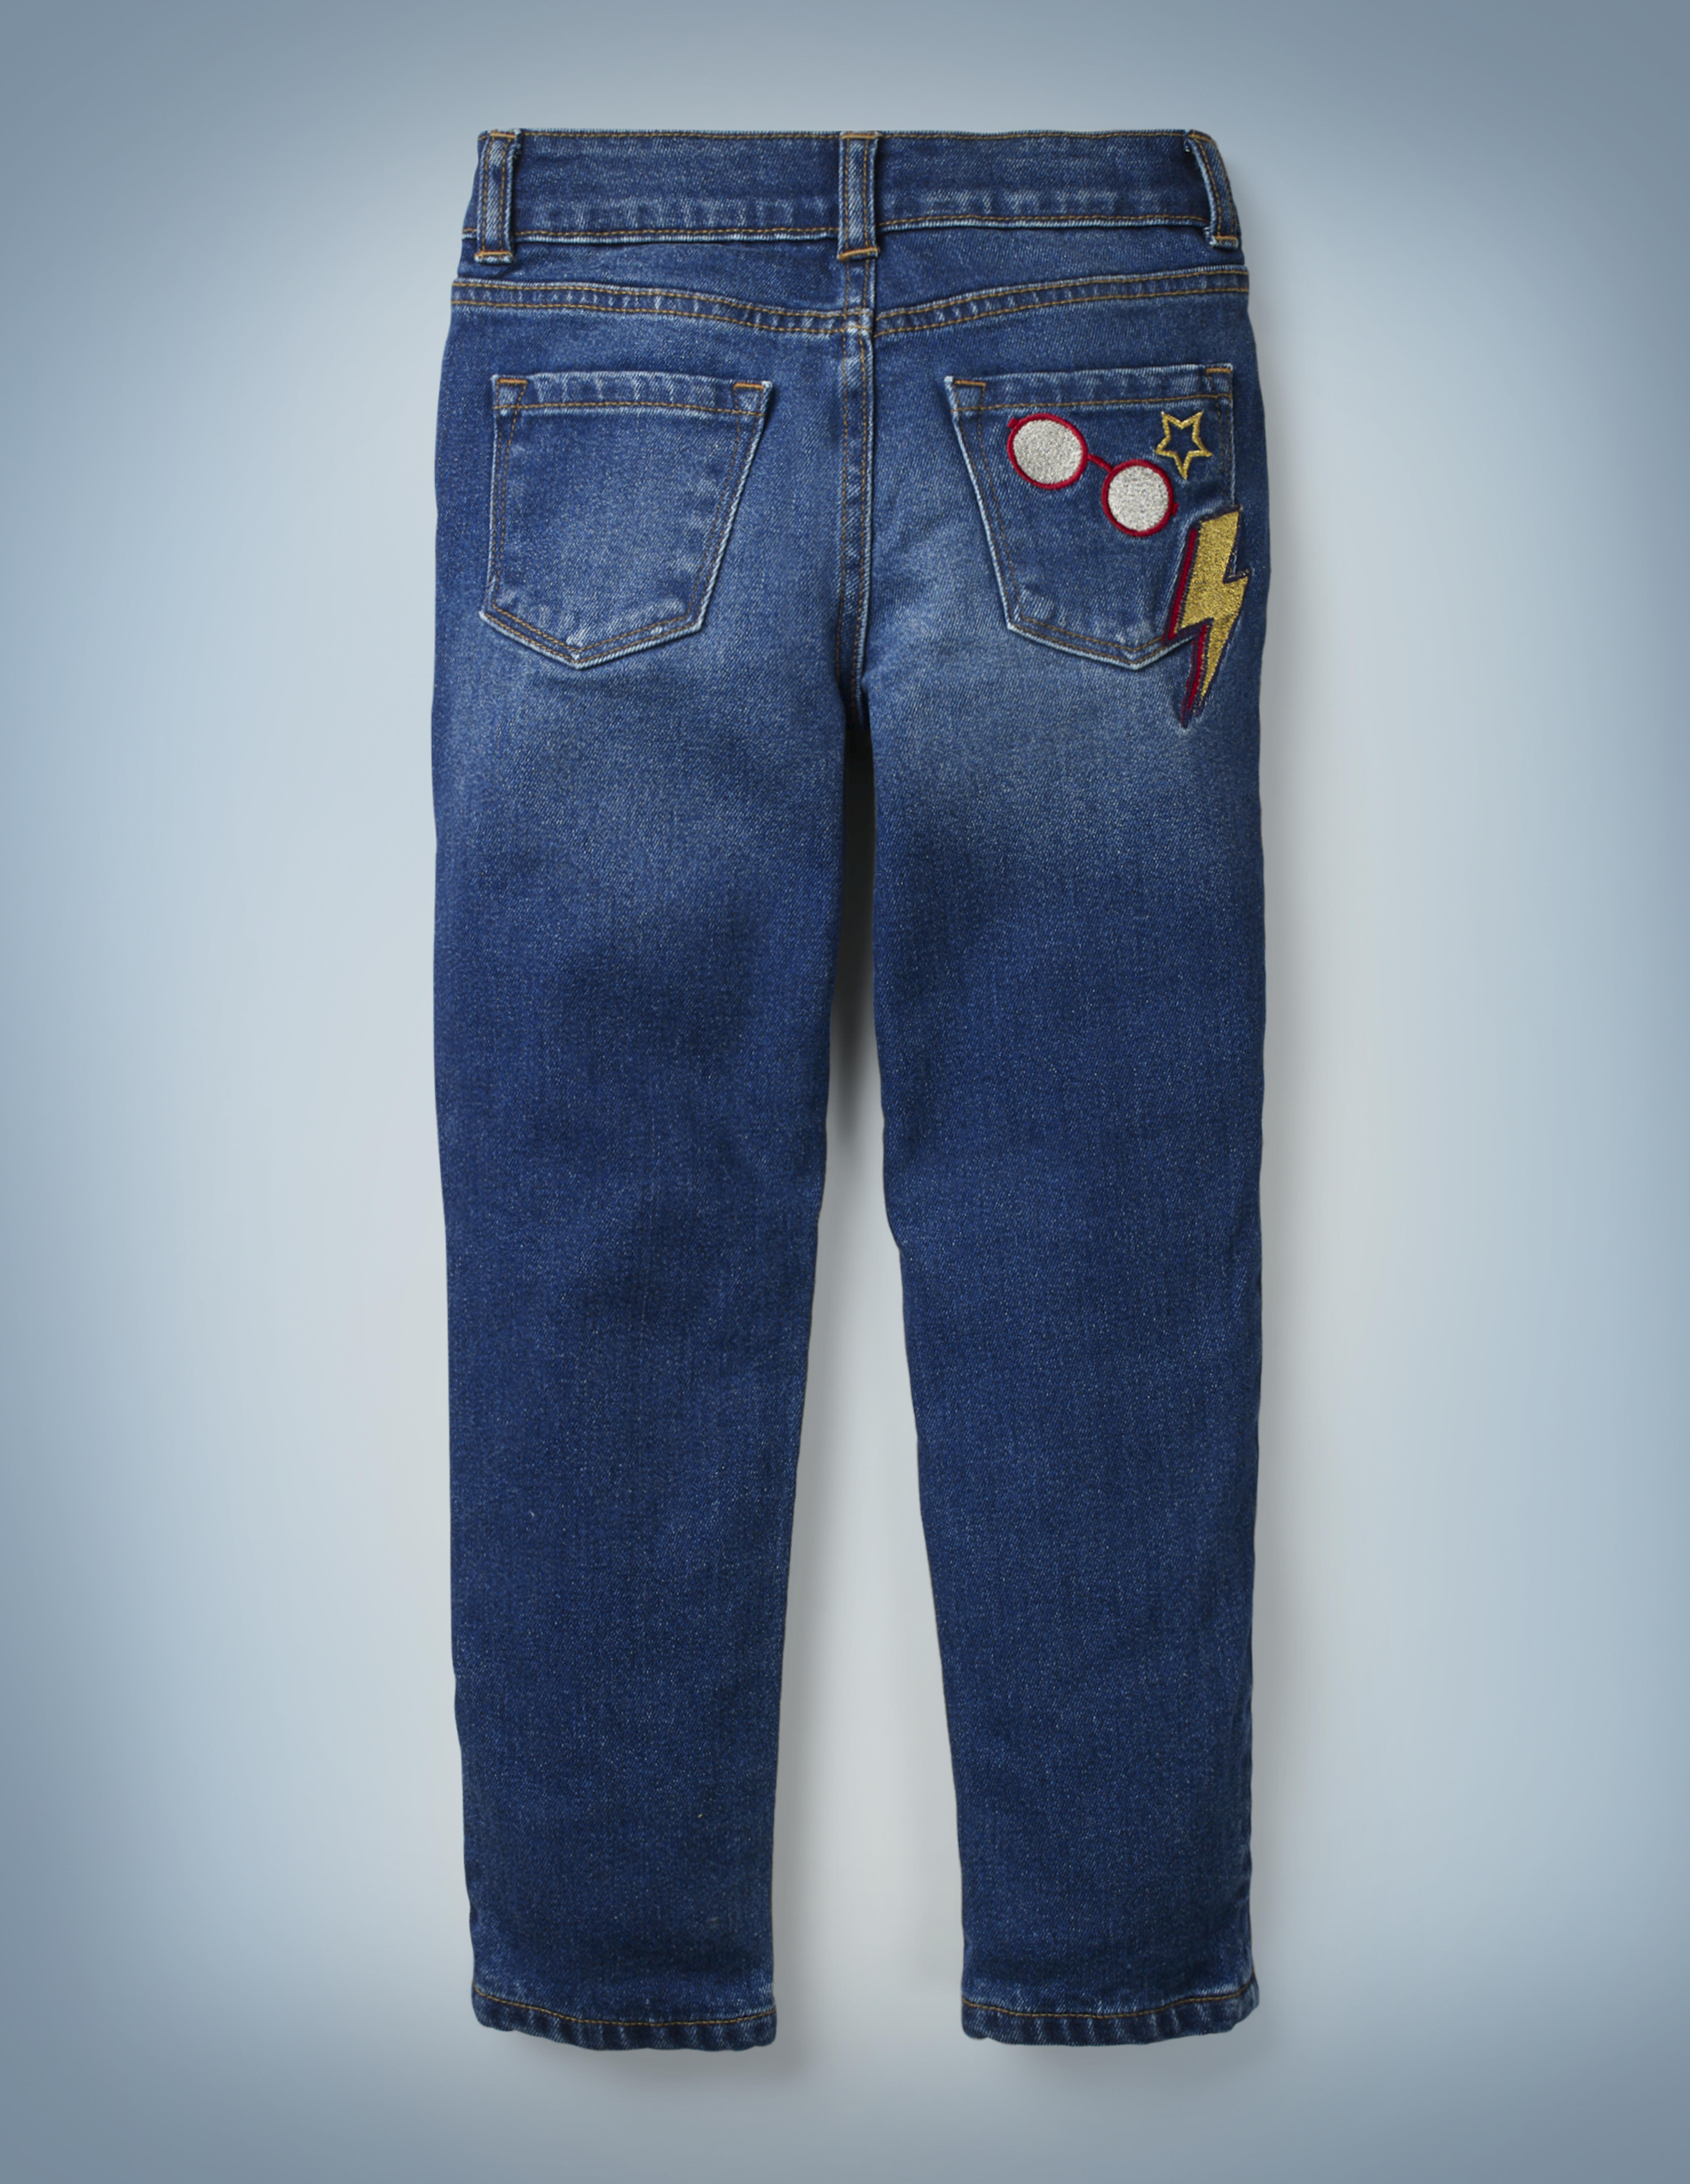 The Mini Boden Lightning Bolt Jeans include a fun design of Harry Potter's glasses, a red-and-gold lightning bolt, and a star on the back right pocket. They retail for £28.